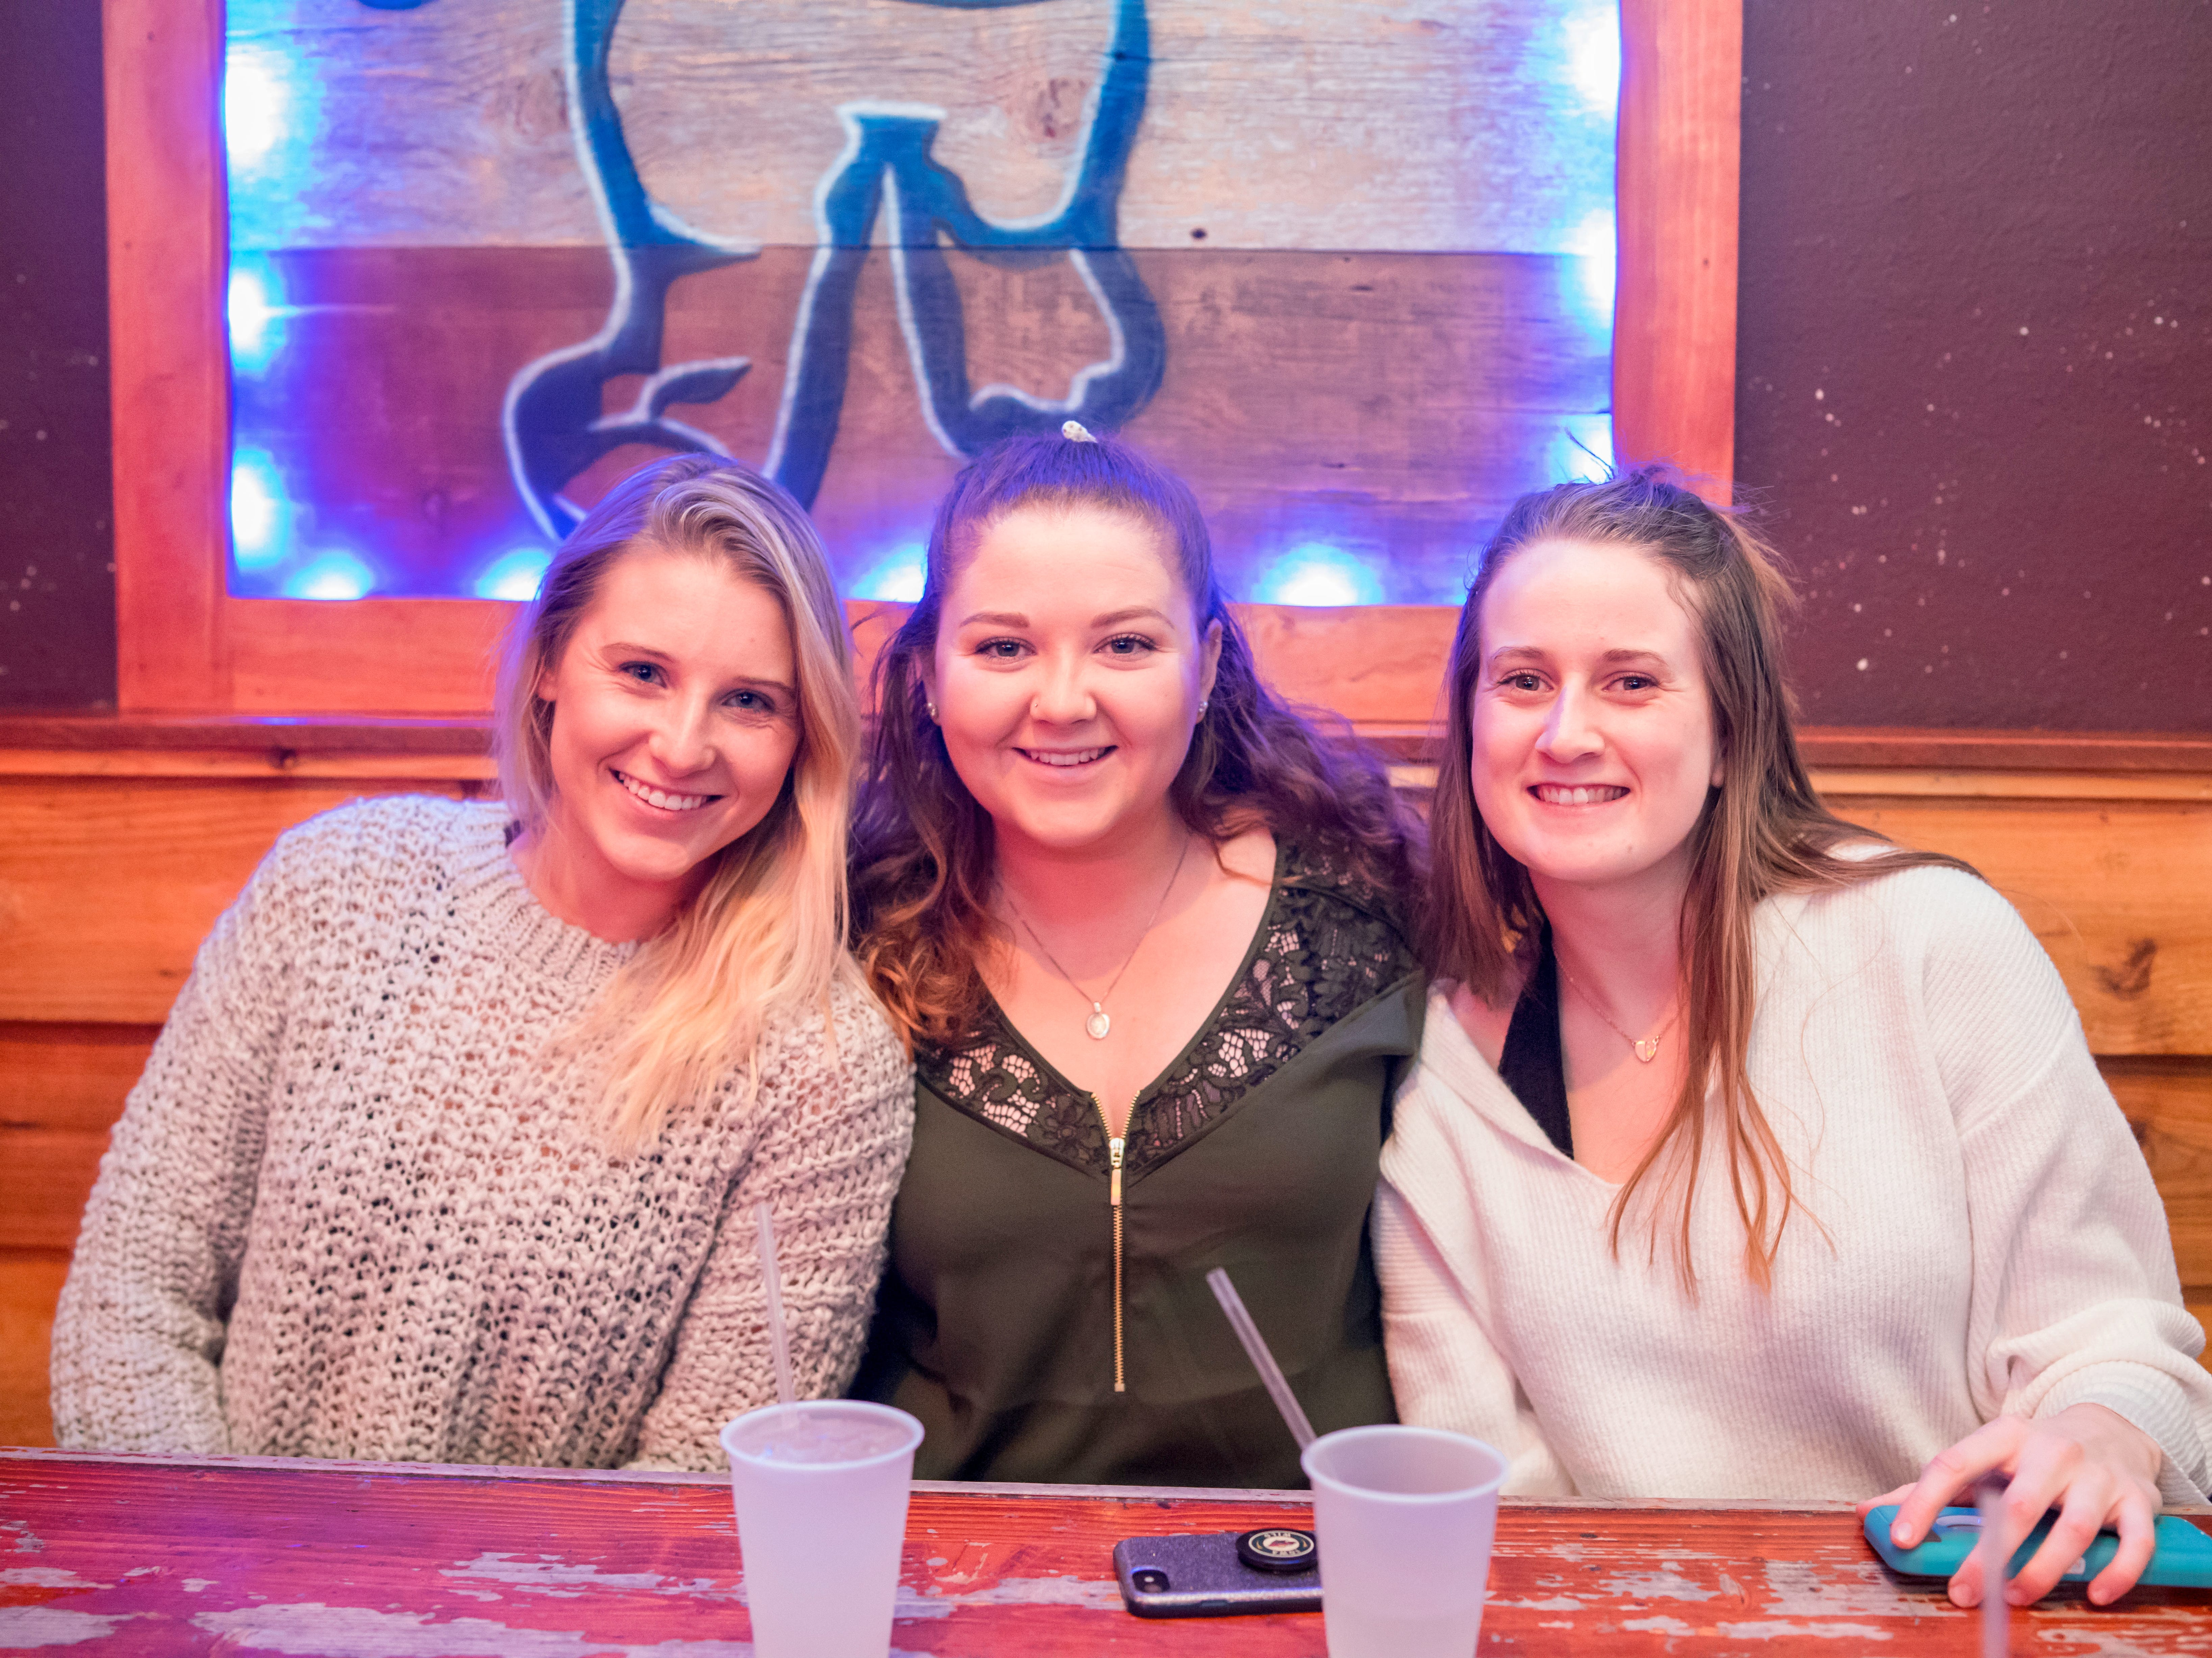 Lexi Wagner, 22, Kaylee Gardell, 23, and Brenna Schultz, 21, all of Des Moines, having a fun time,Friday, Dec. 14 at American Outlaws.